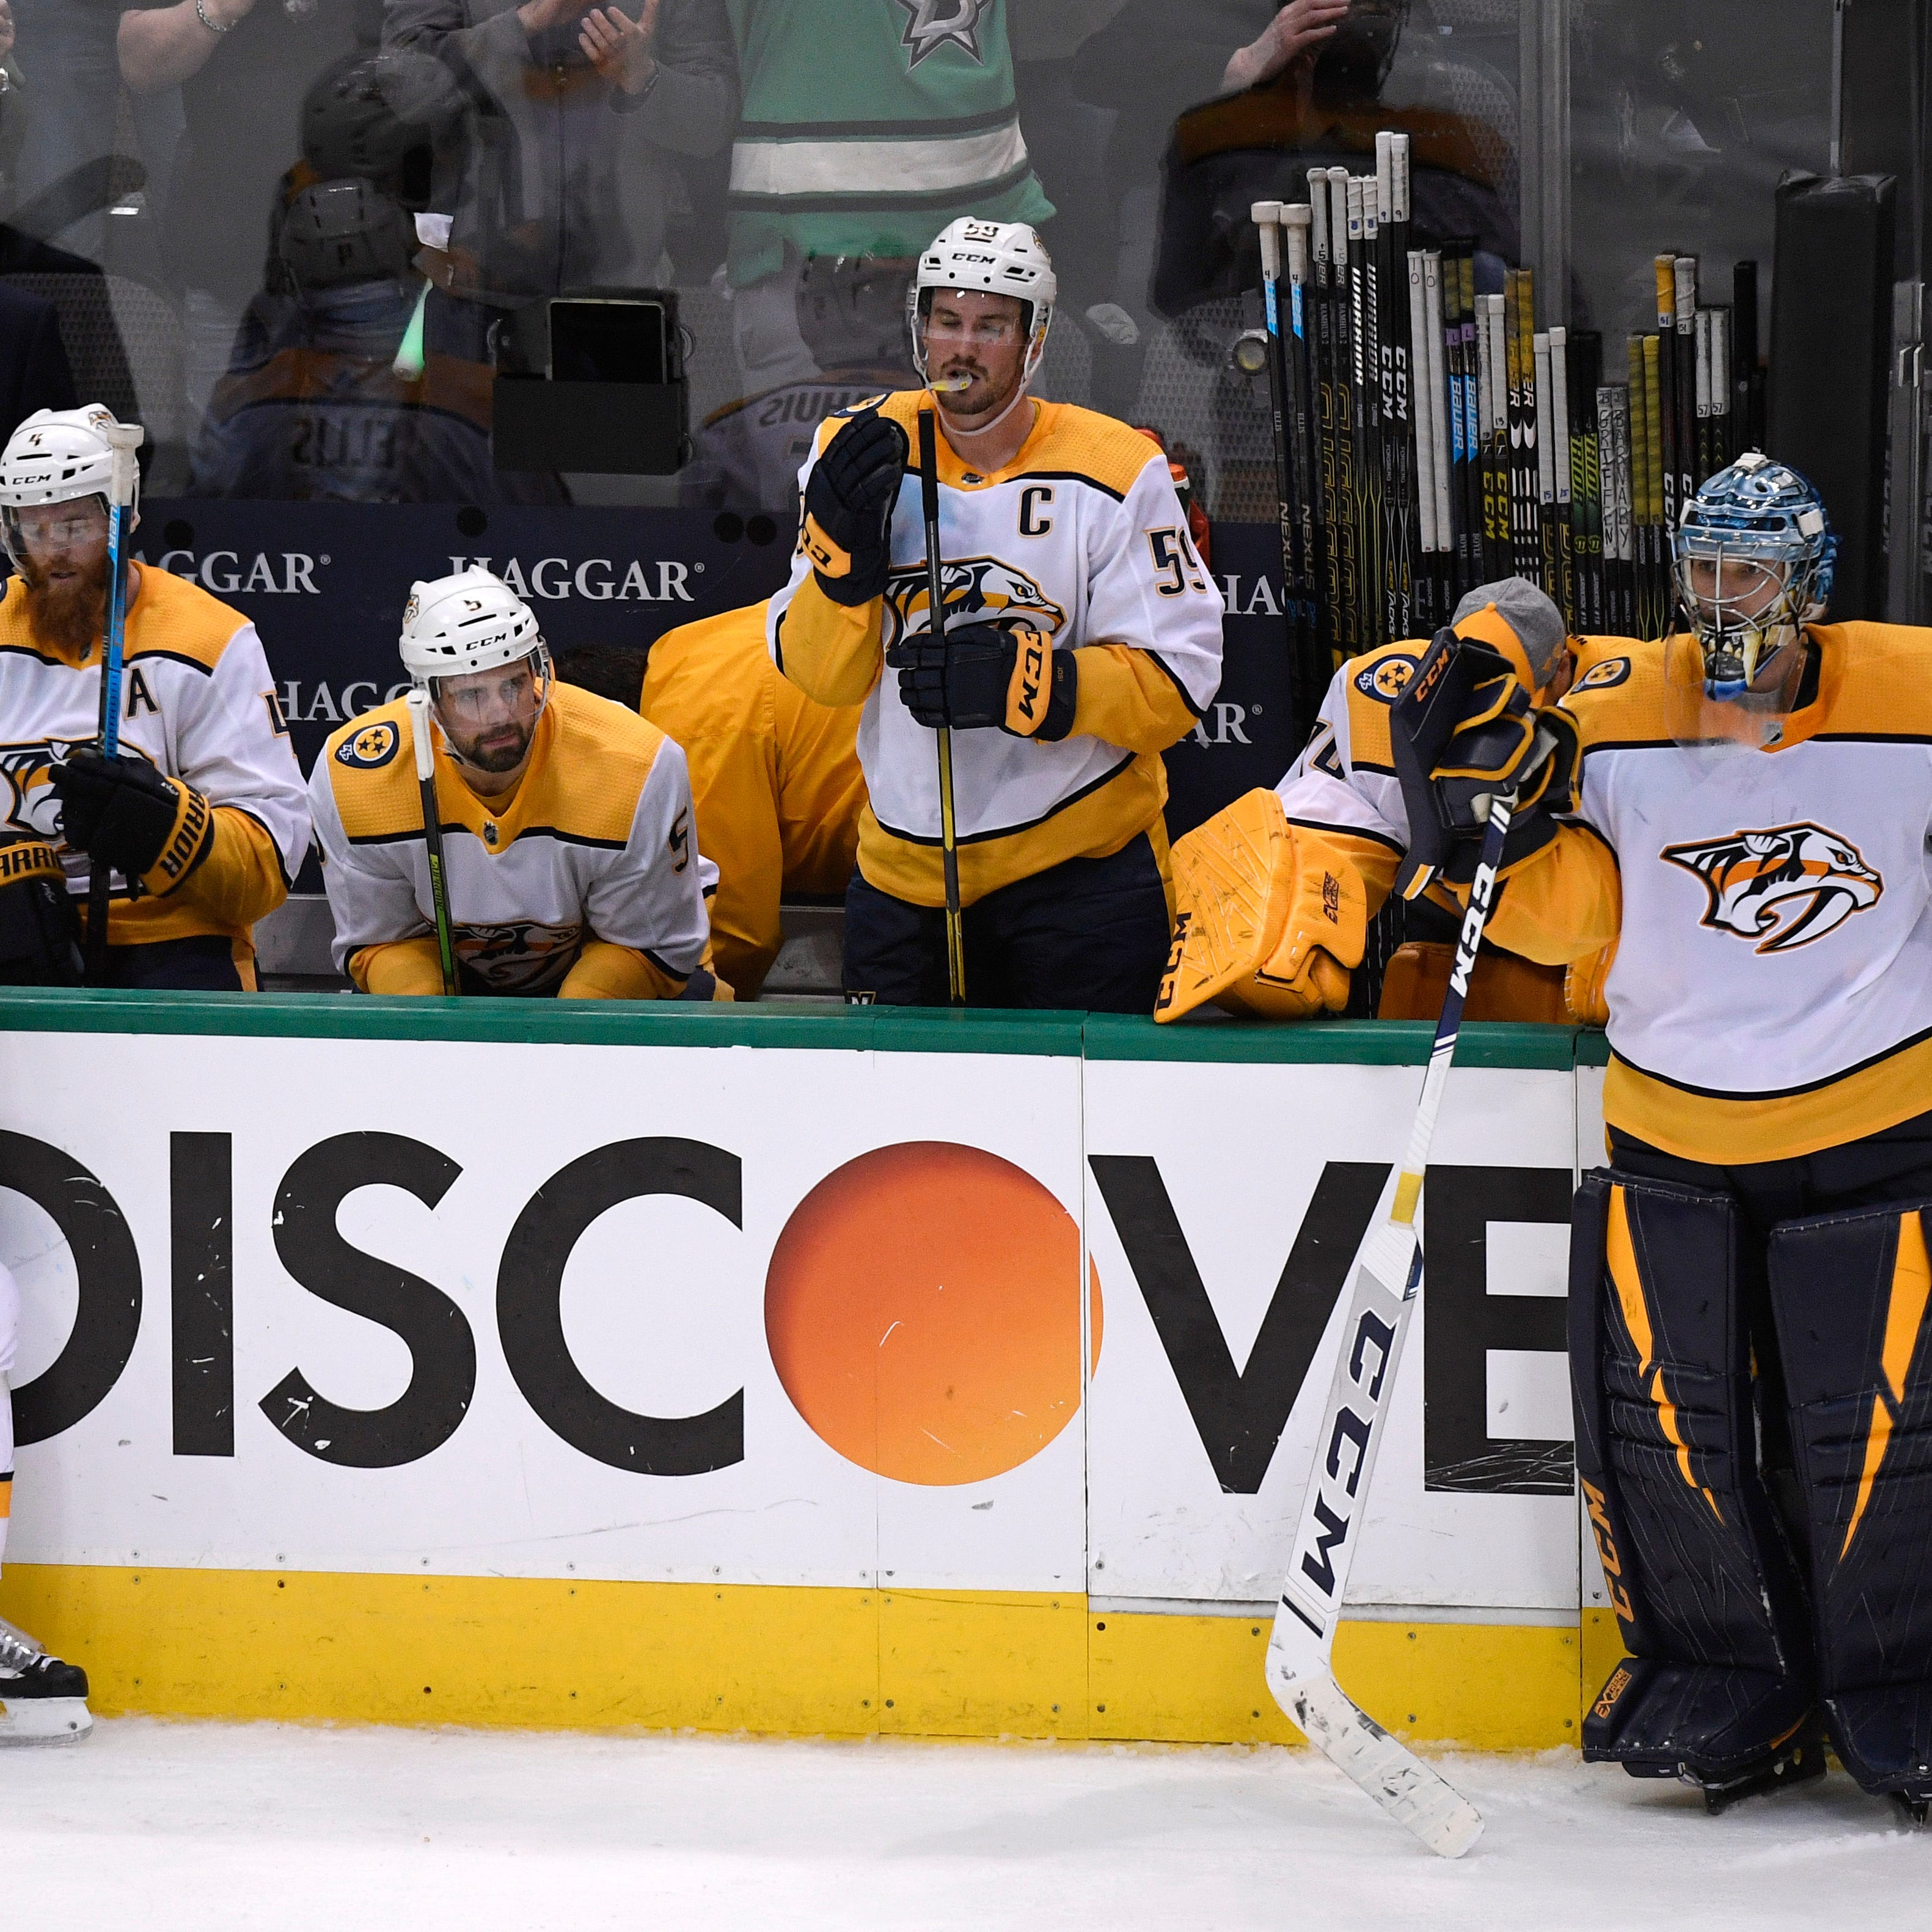 Predators fans left with mixed emotions after season-ending loss in Game 6 to the Dallas Stars